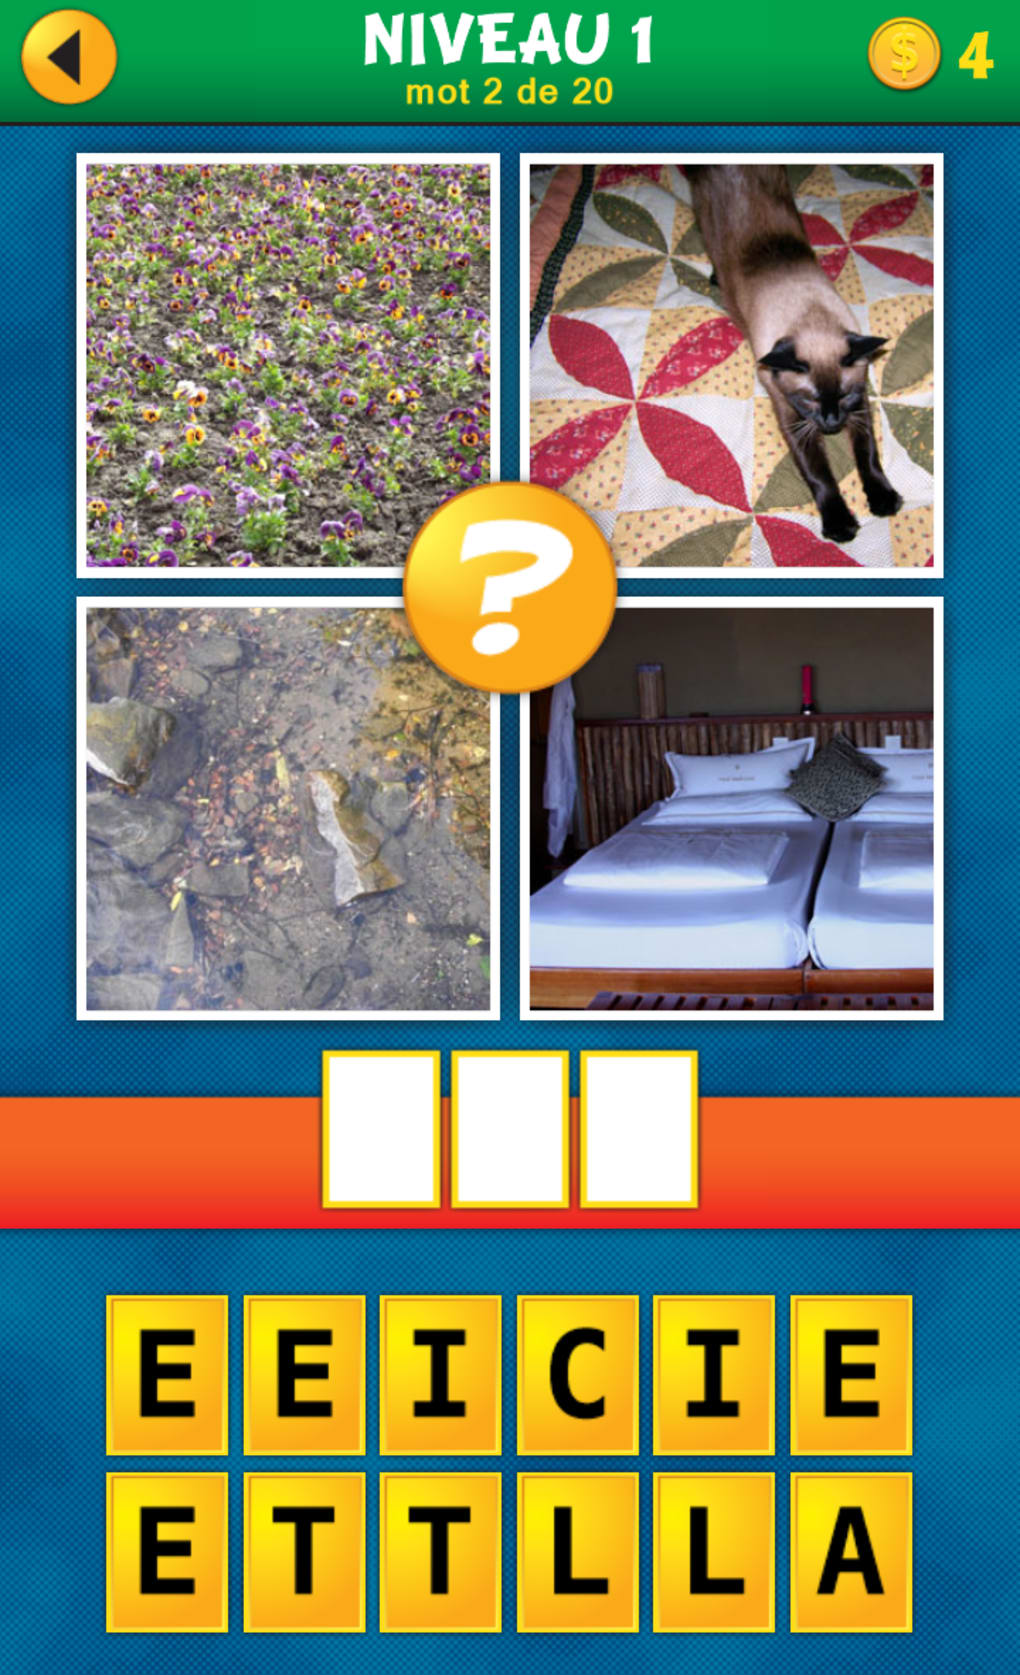 4 images 1 mot soluce iphone Games List for All Games in Game-Solver